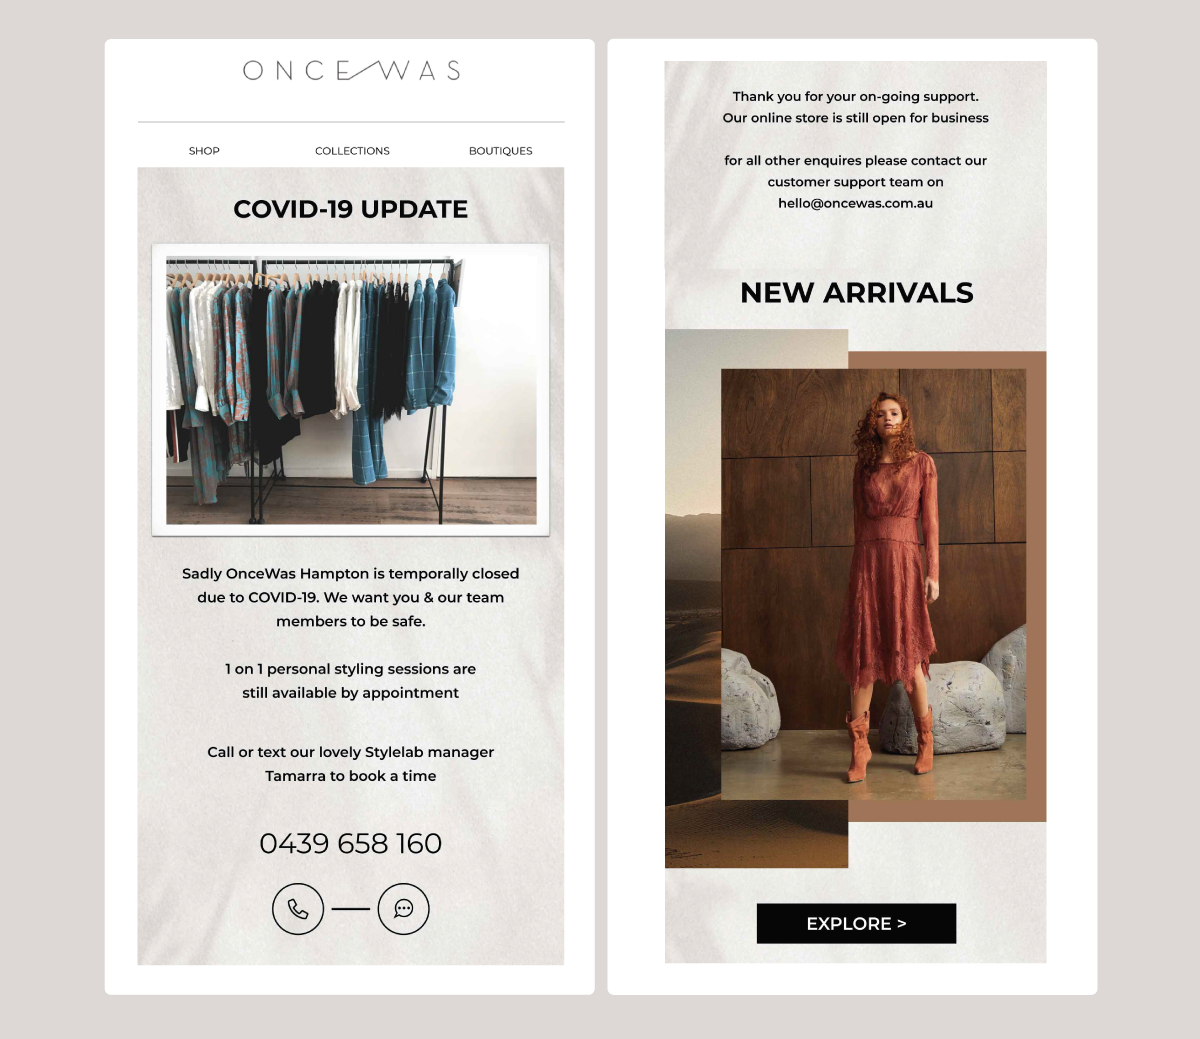 An email campaign from OnceWas providing customers with a COVID-19 store closure update.